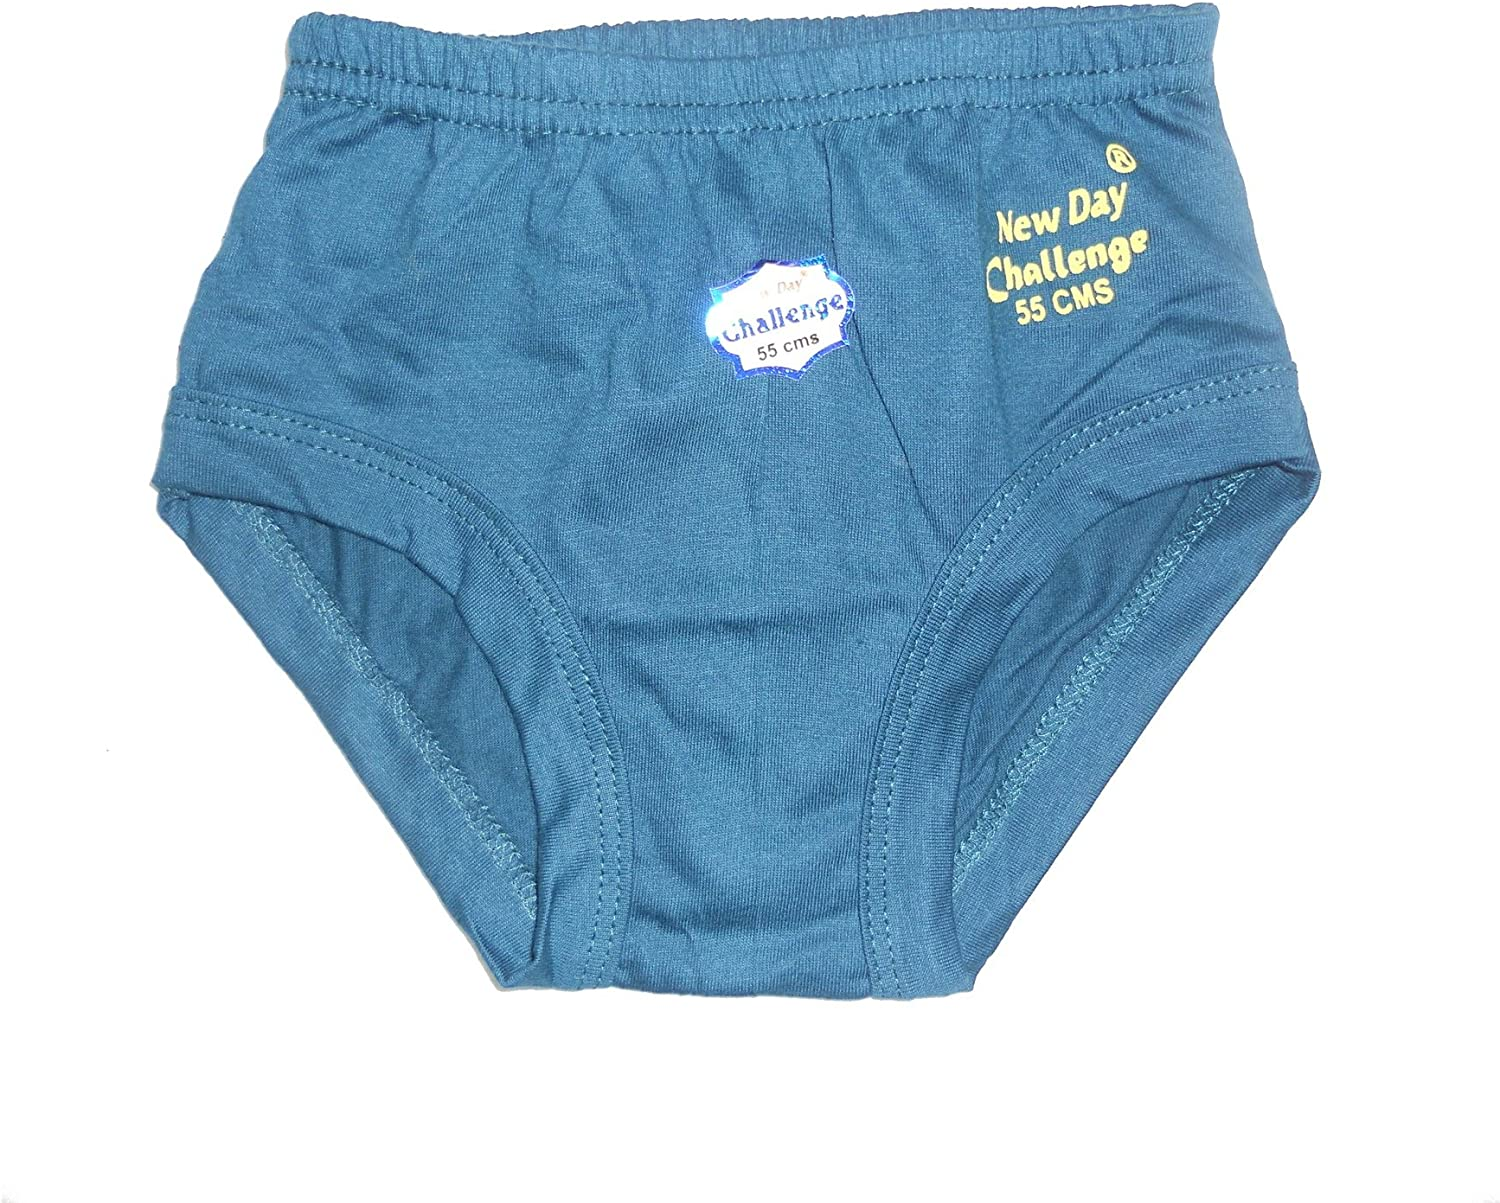 New Day Little Boys Cotton Brief Pack of 10